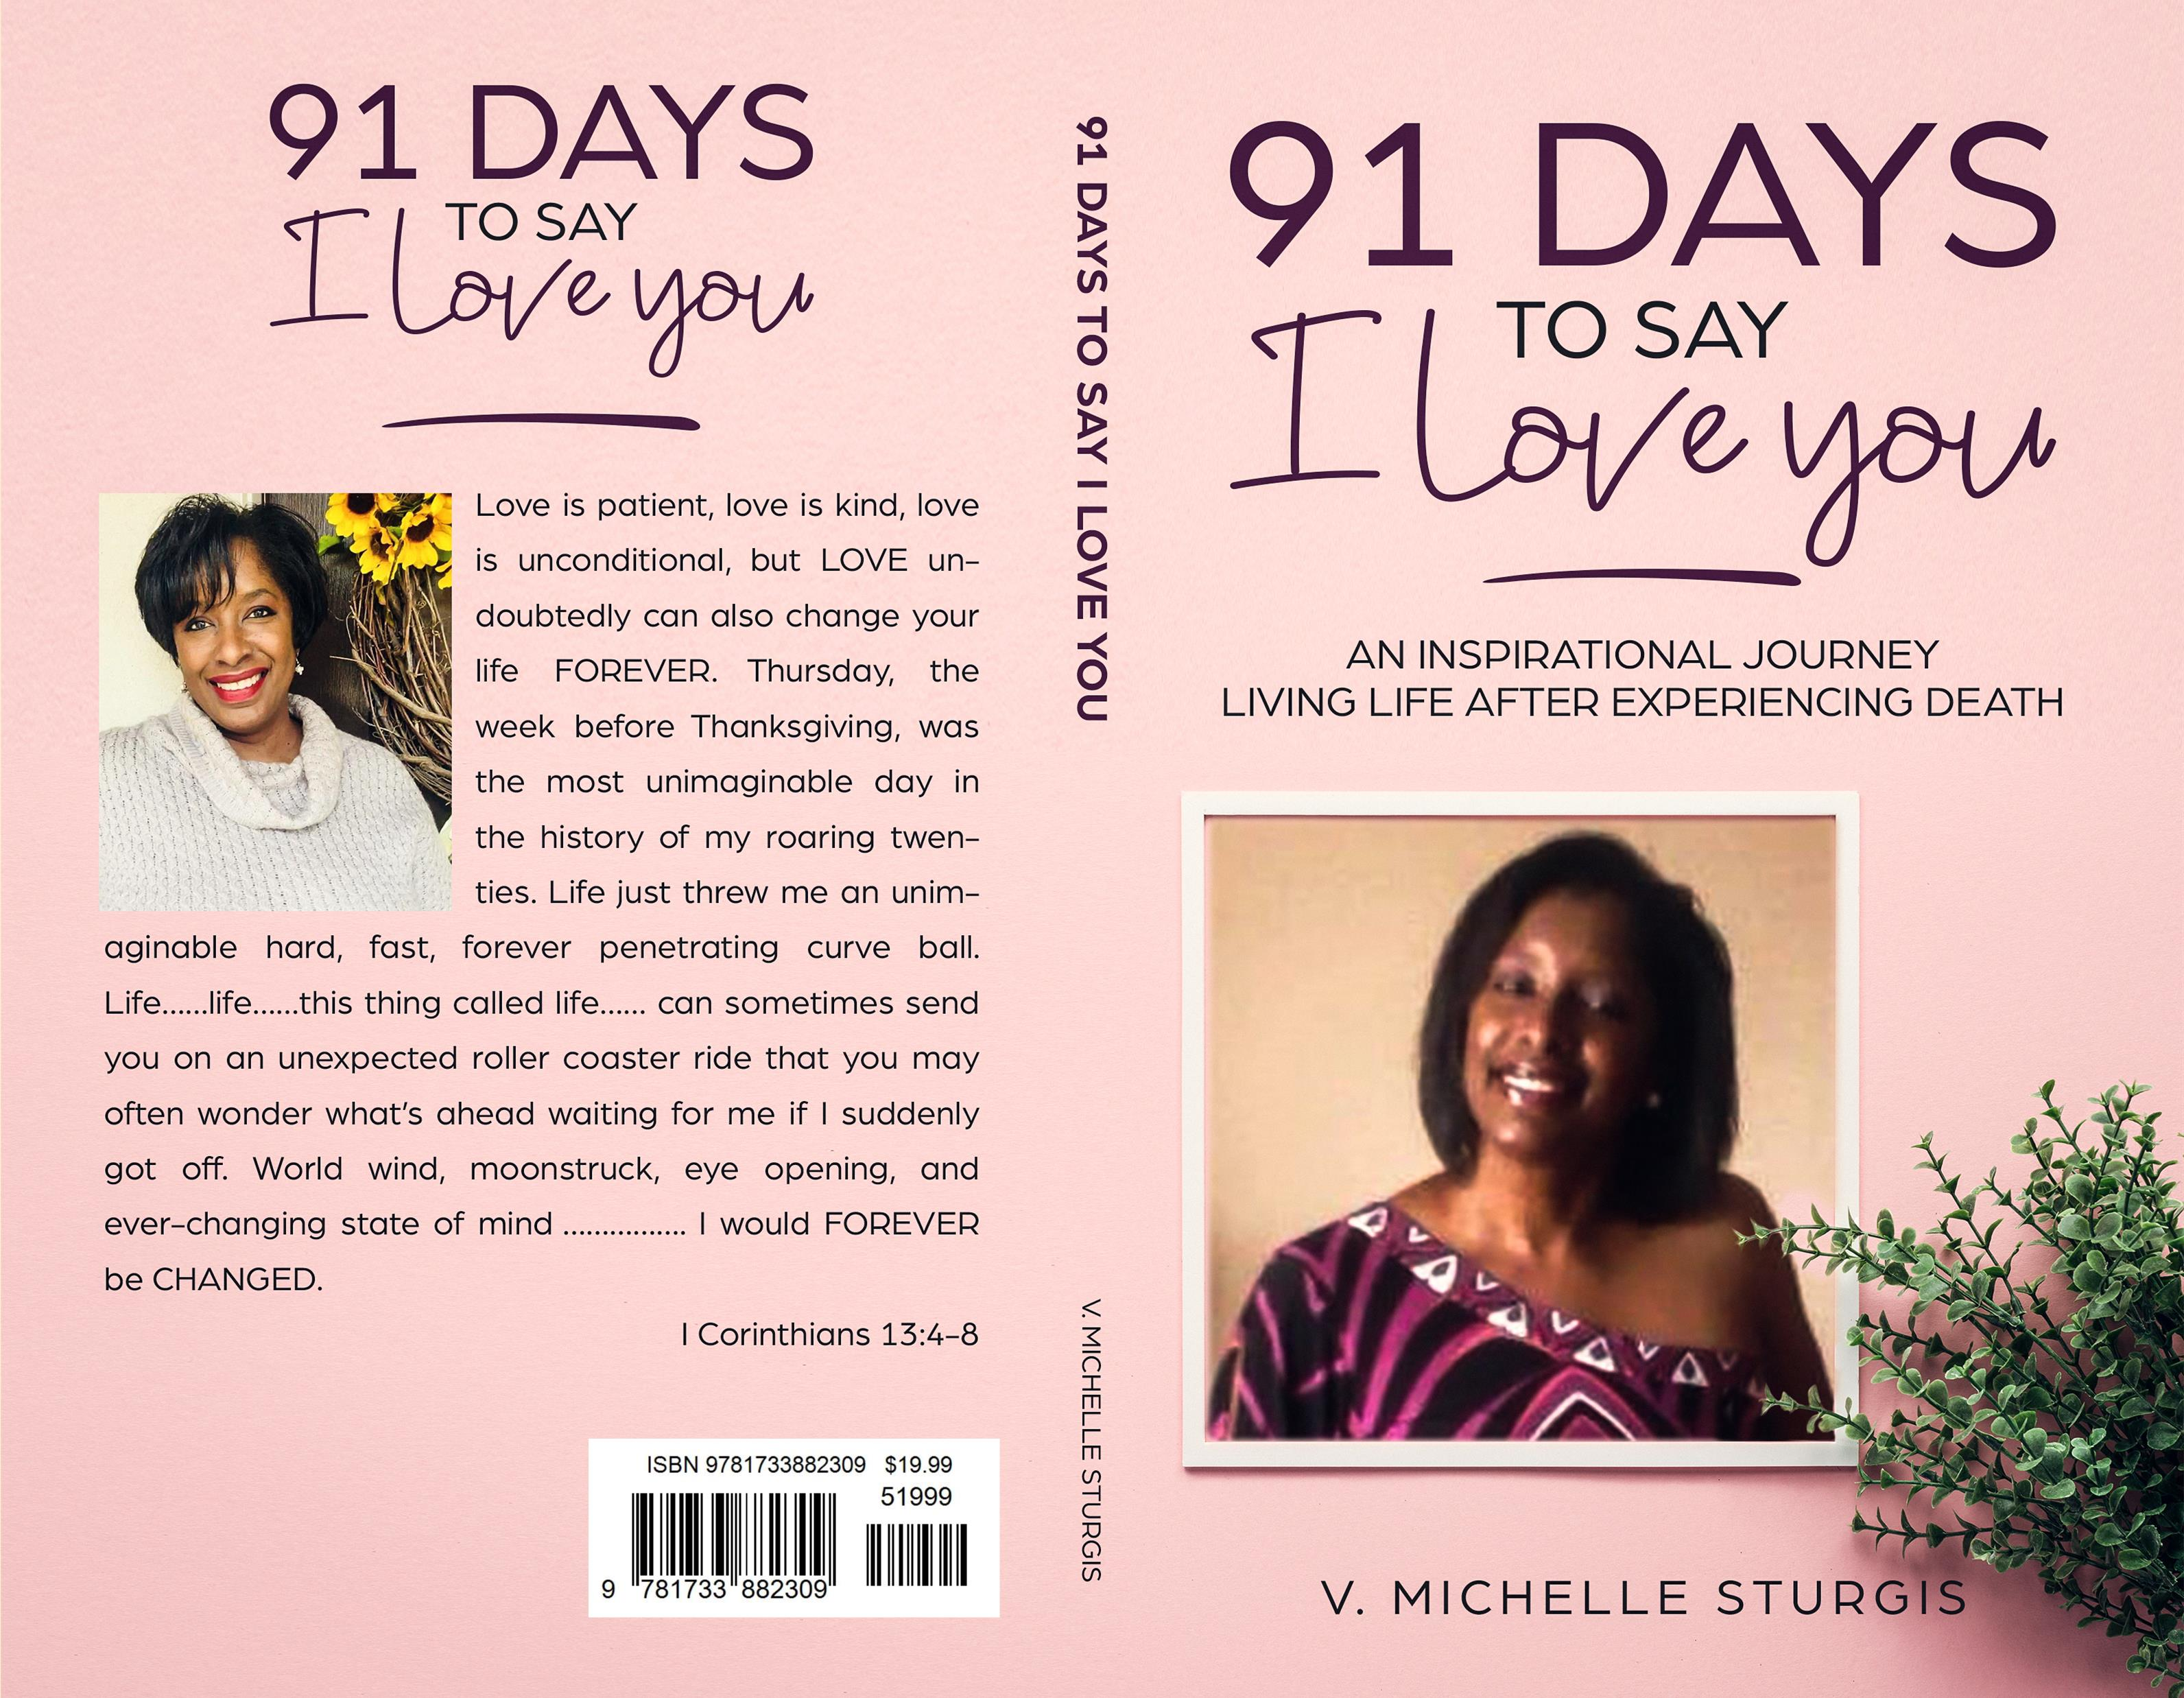 91 Days To Say I Love You cover image